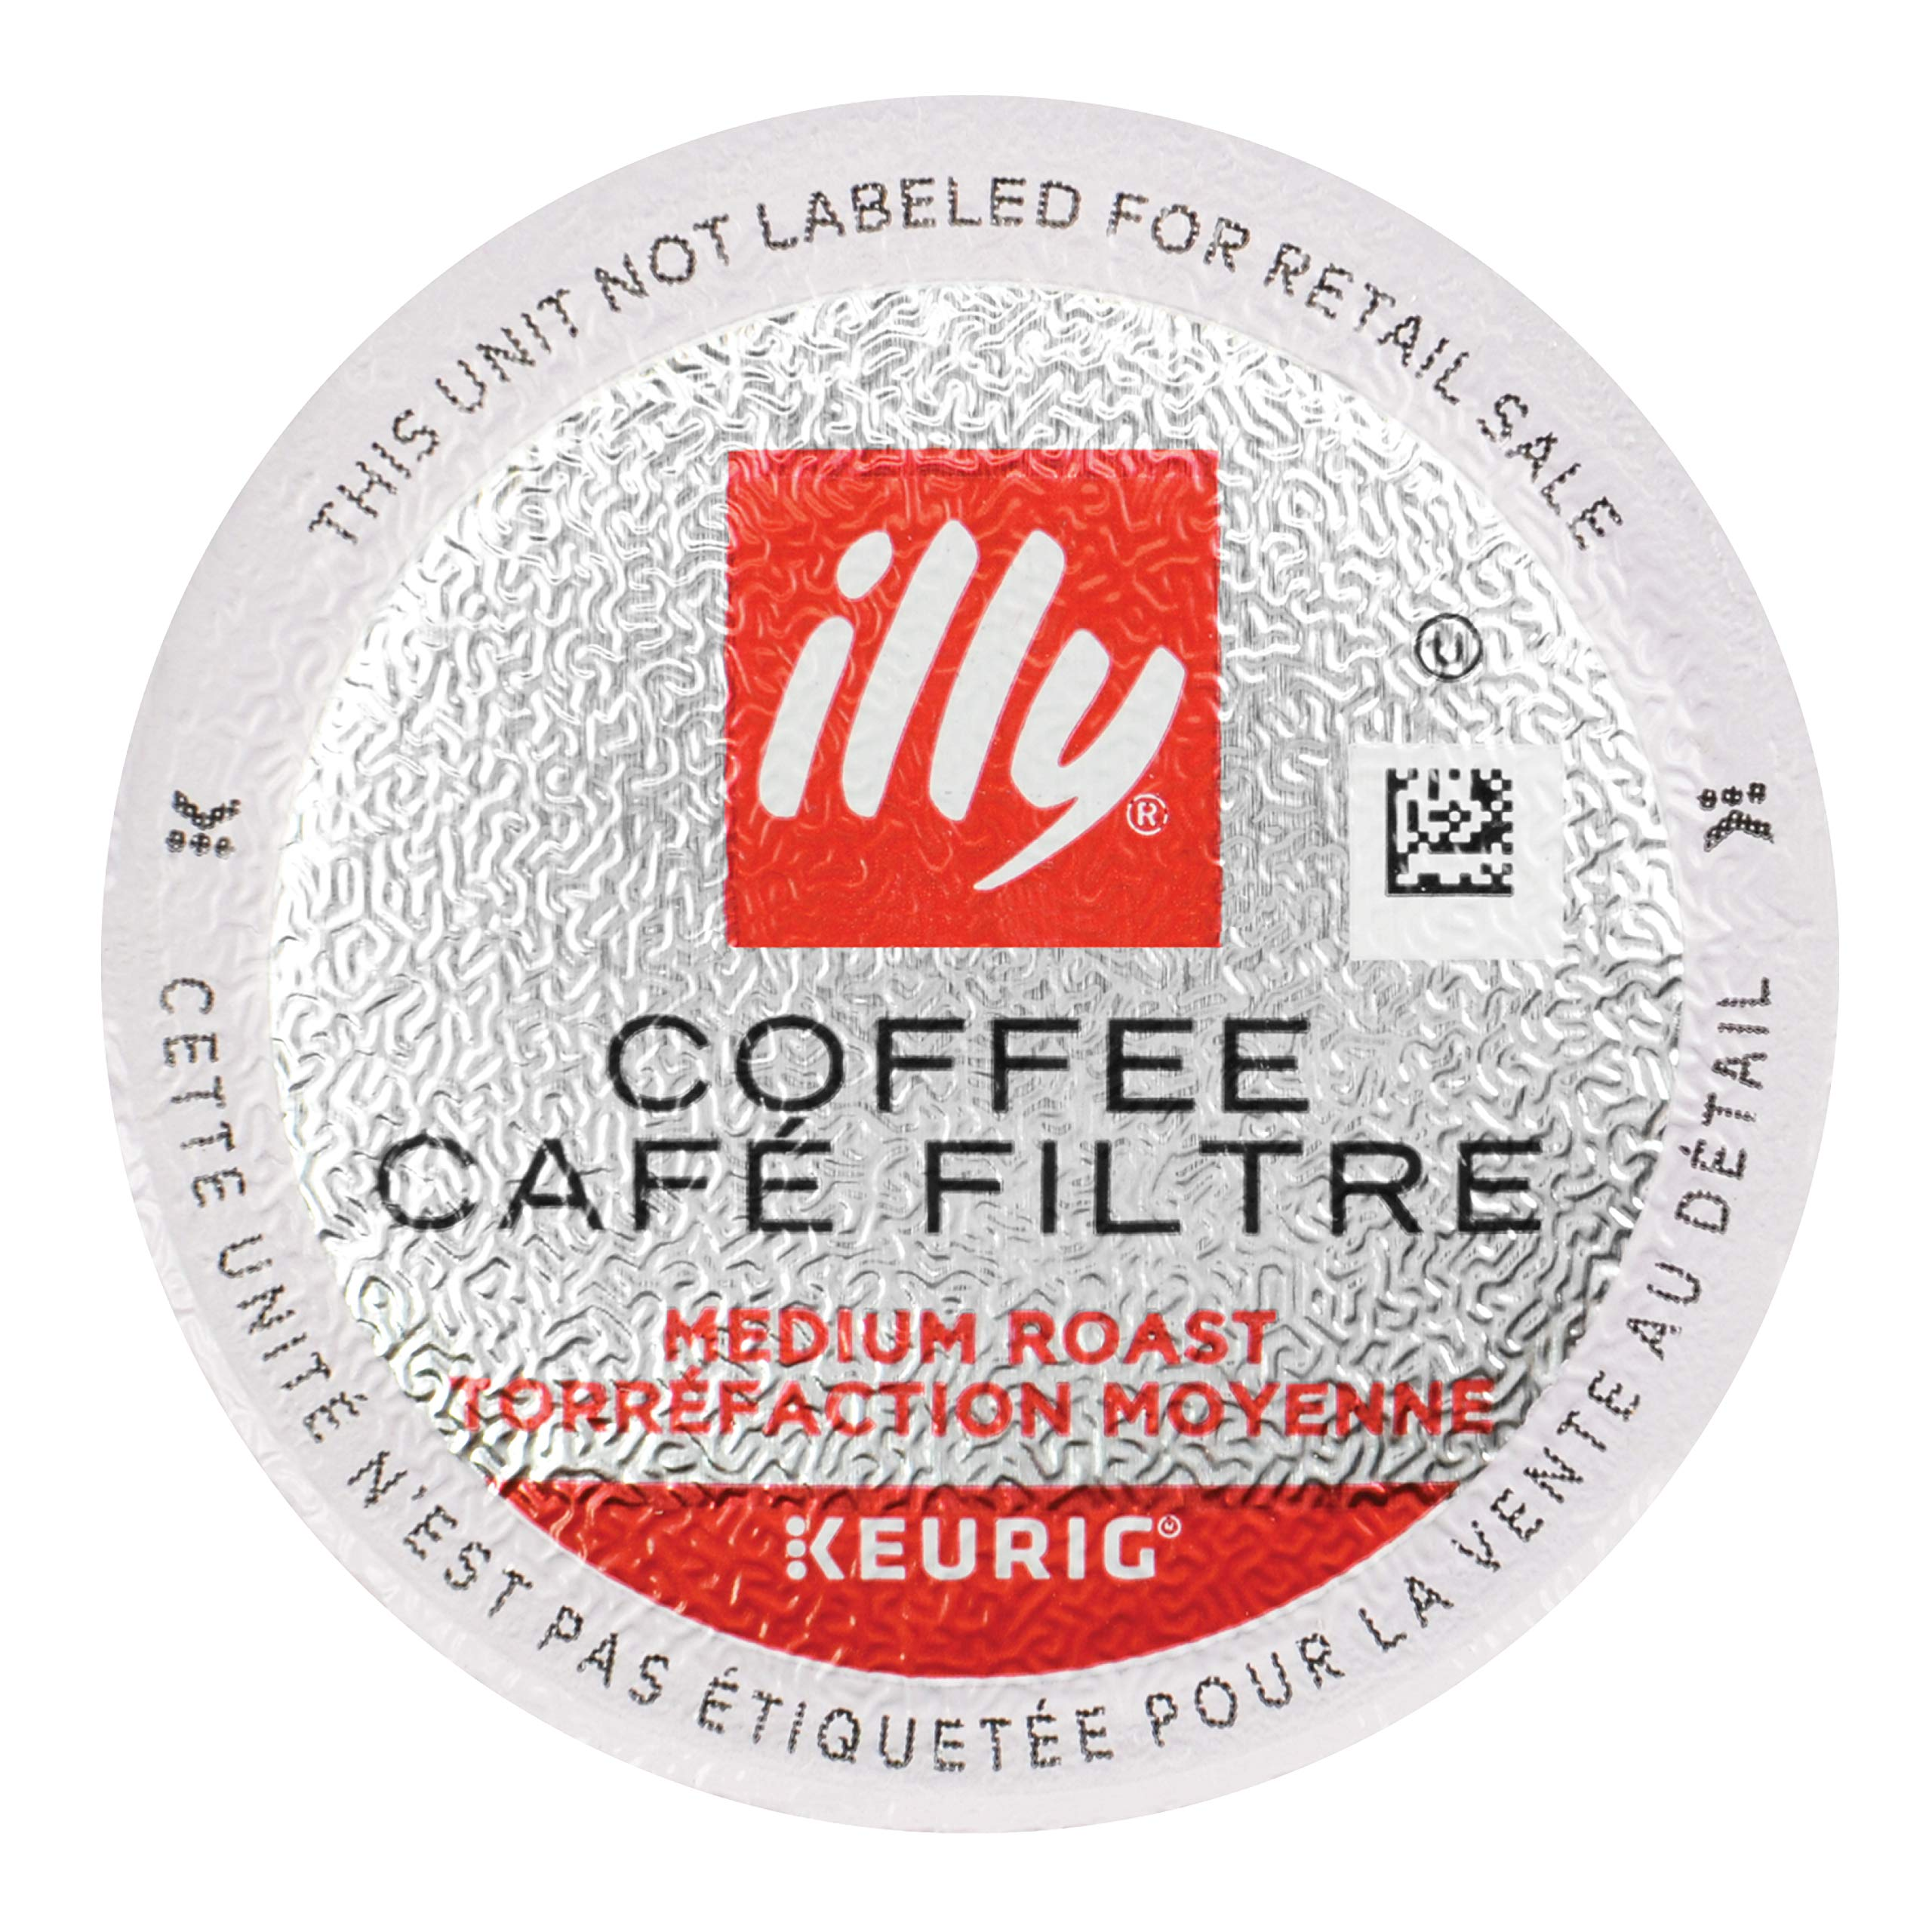 illy Coffee, Medium Roast, K-Cup for Keurig, 100% Arabica Bean Signature Italian Blend, Premium Gourmet Roasted Single Serve Drip Brewed Coffee,  Made for Keurig K-Cup Brewers, 10 Count, Pack of 6 by Illy